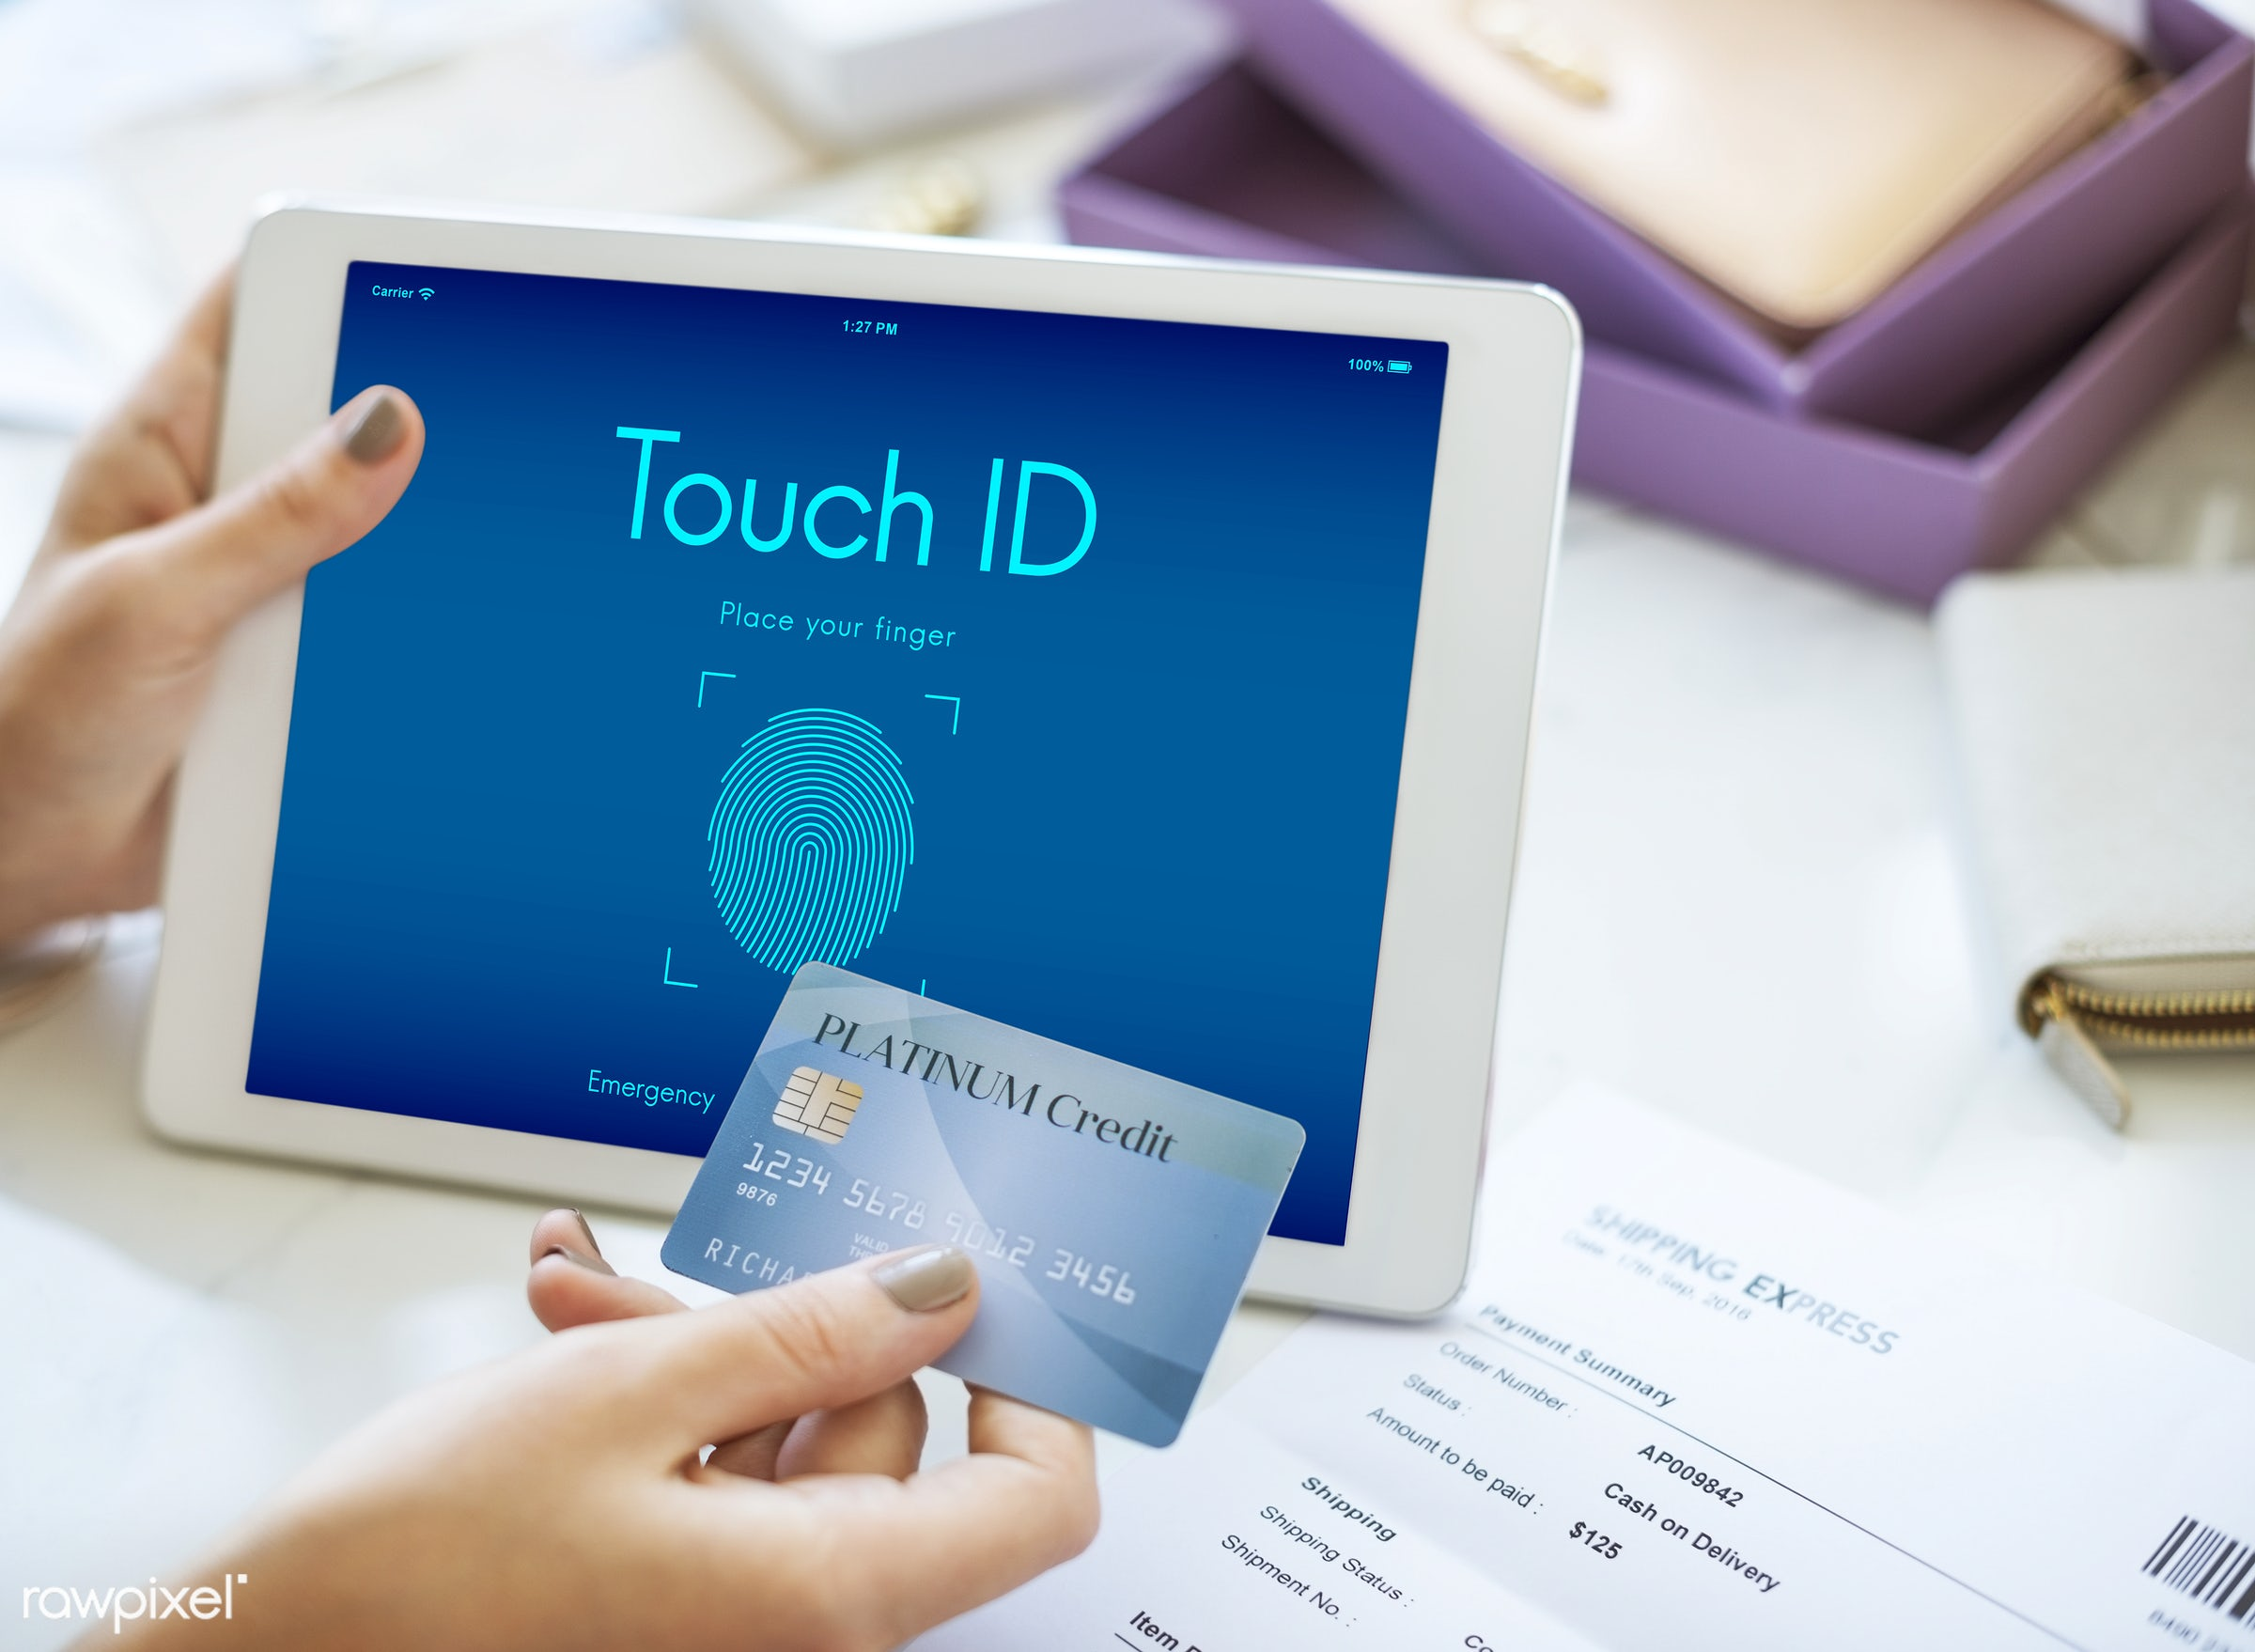 card, technology, access, authorize, communication, connection, convenience, credit card, customer, cyber security, data,...